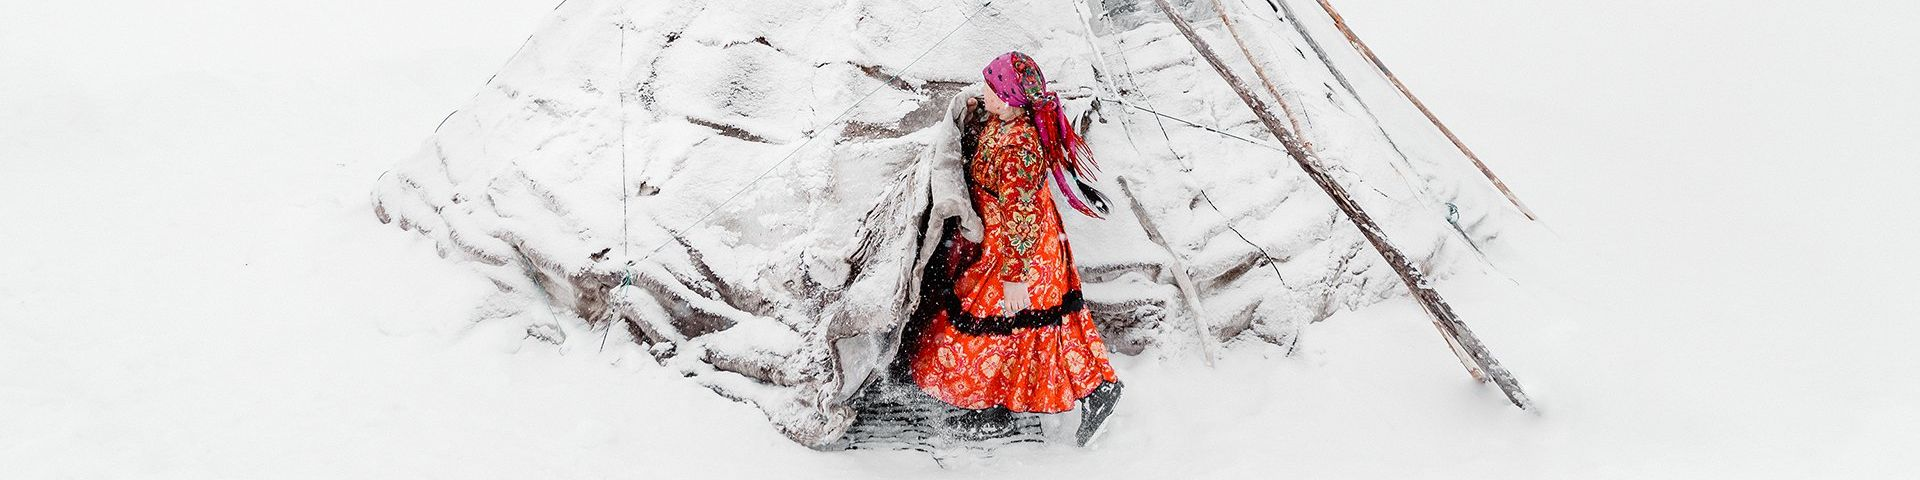 The image is dominated by pure white snow, save a snow-covered chum, or traditional tent used by the migrational tribes of the region. A woman emerges from her tent and is wearing a long orange/red patterned dress and boots. The dress has a black trim midway up the skirt and she also wears a pink headscarf, tied at the back of her head, which swings behind her.